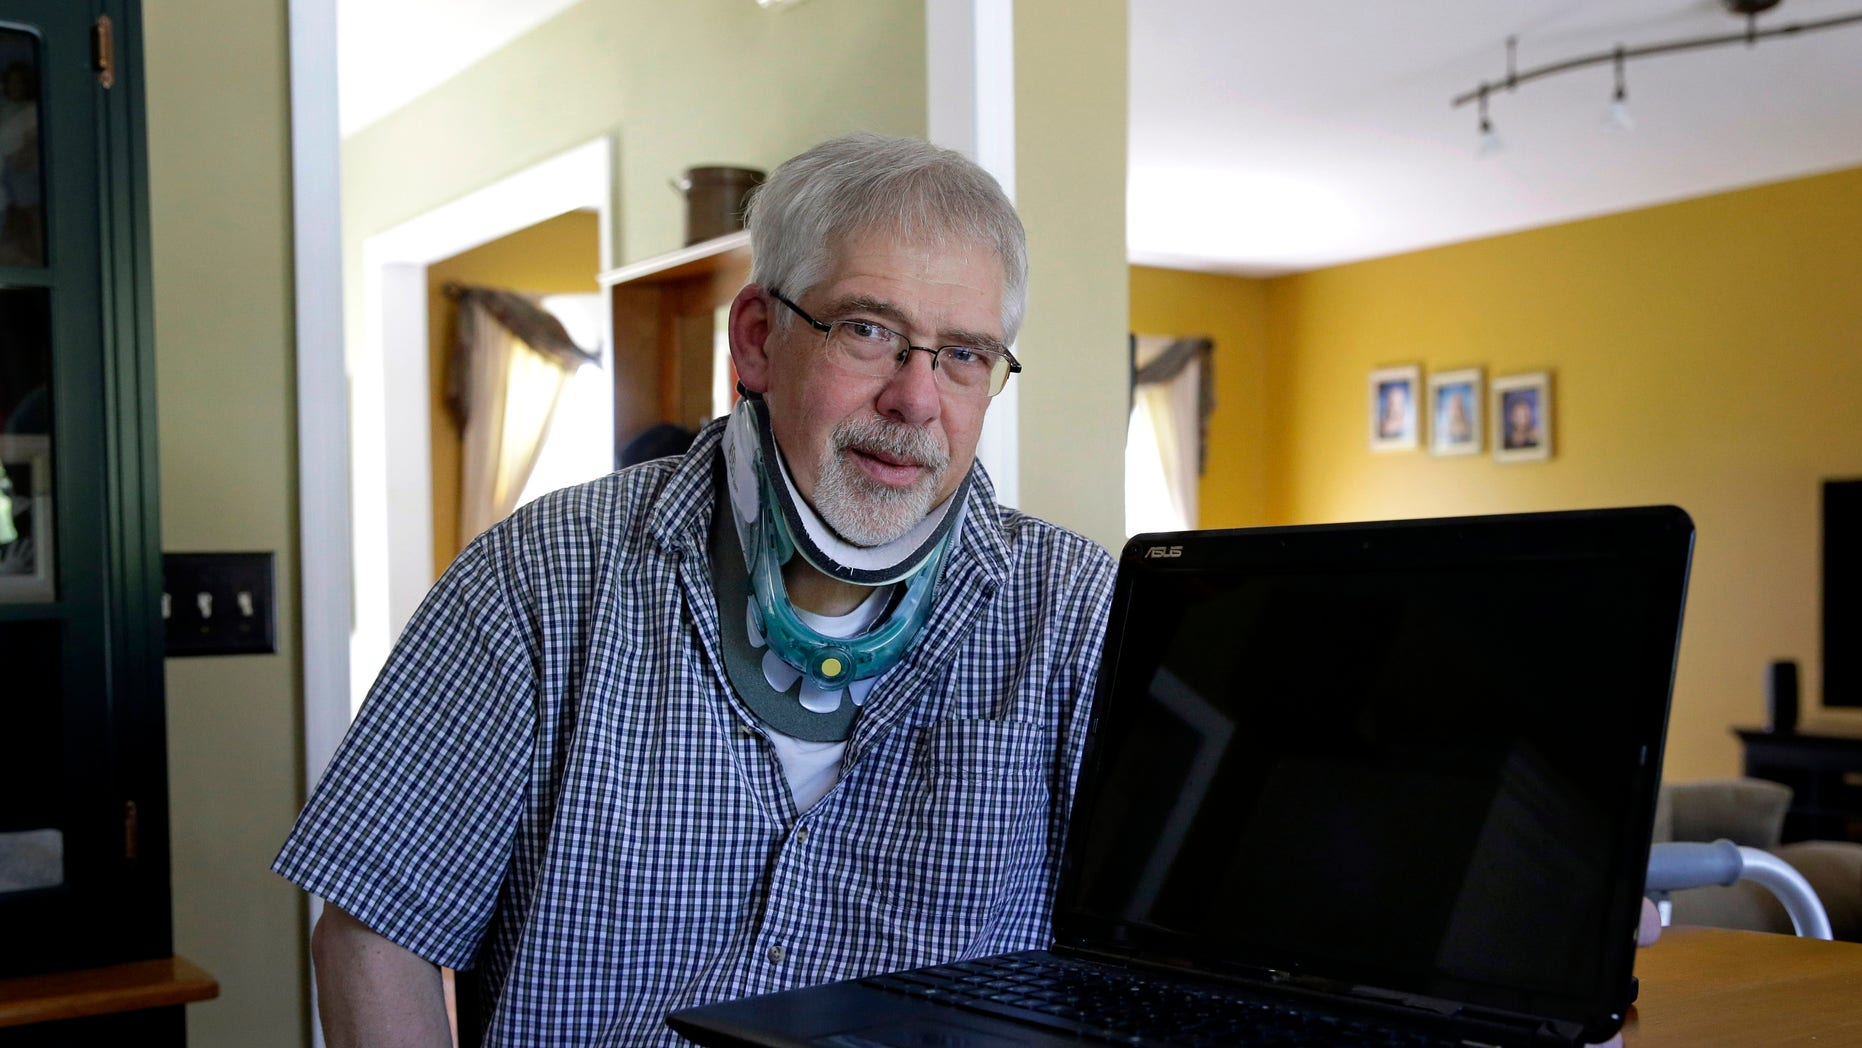 Mark Matulaitis poses with the laptop that he uses for virtual house calls with his neurologist in his home in Salisbury, Md. Matulaitis has had Parkinson's disease since 2011 and sees a neurologist at the University of Rochester via his laptop and special Skype-like software.  (AP Photo/Patrick Semansky)